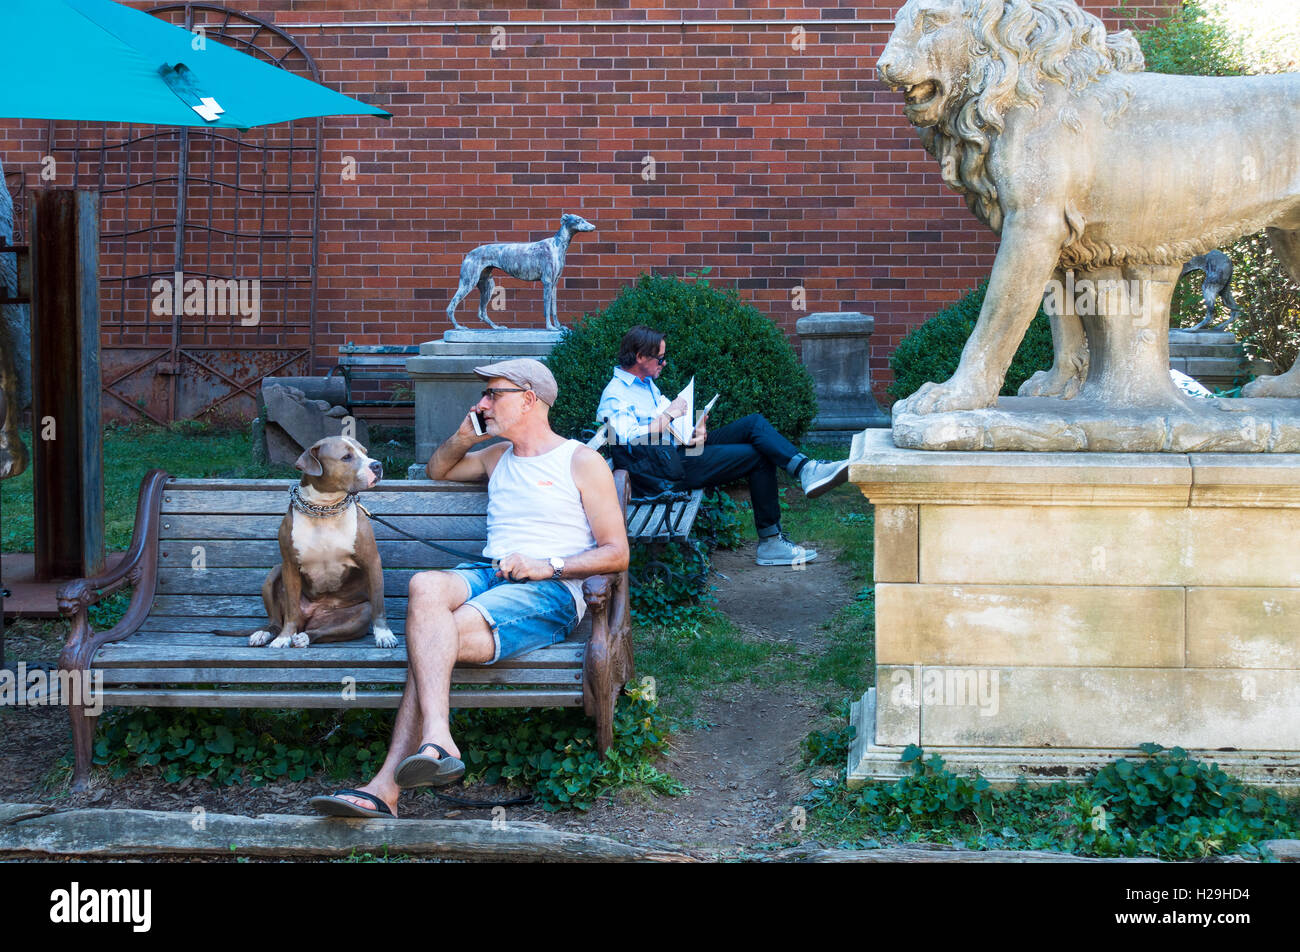 Senior man with his pit bull dog relaxing in Elizabeth Street Garden in Nolita - Stock Image